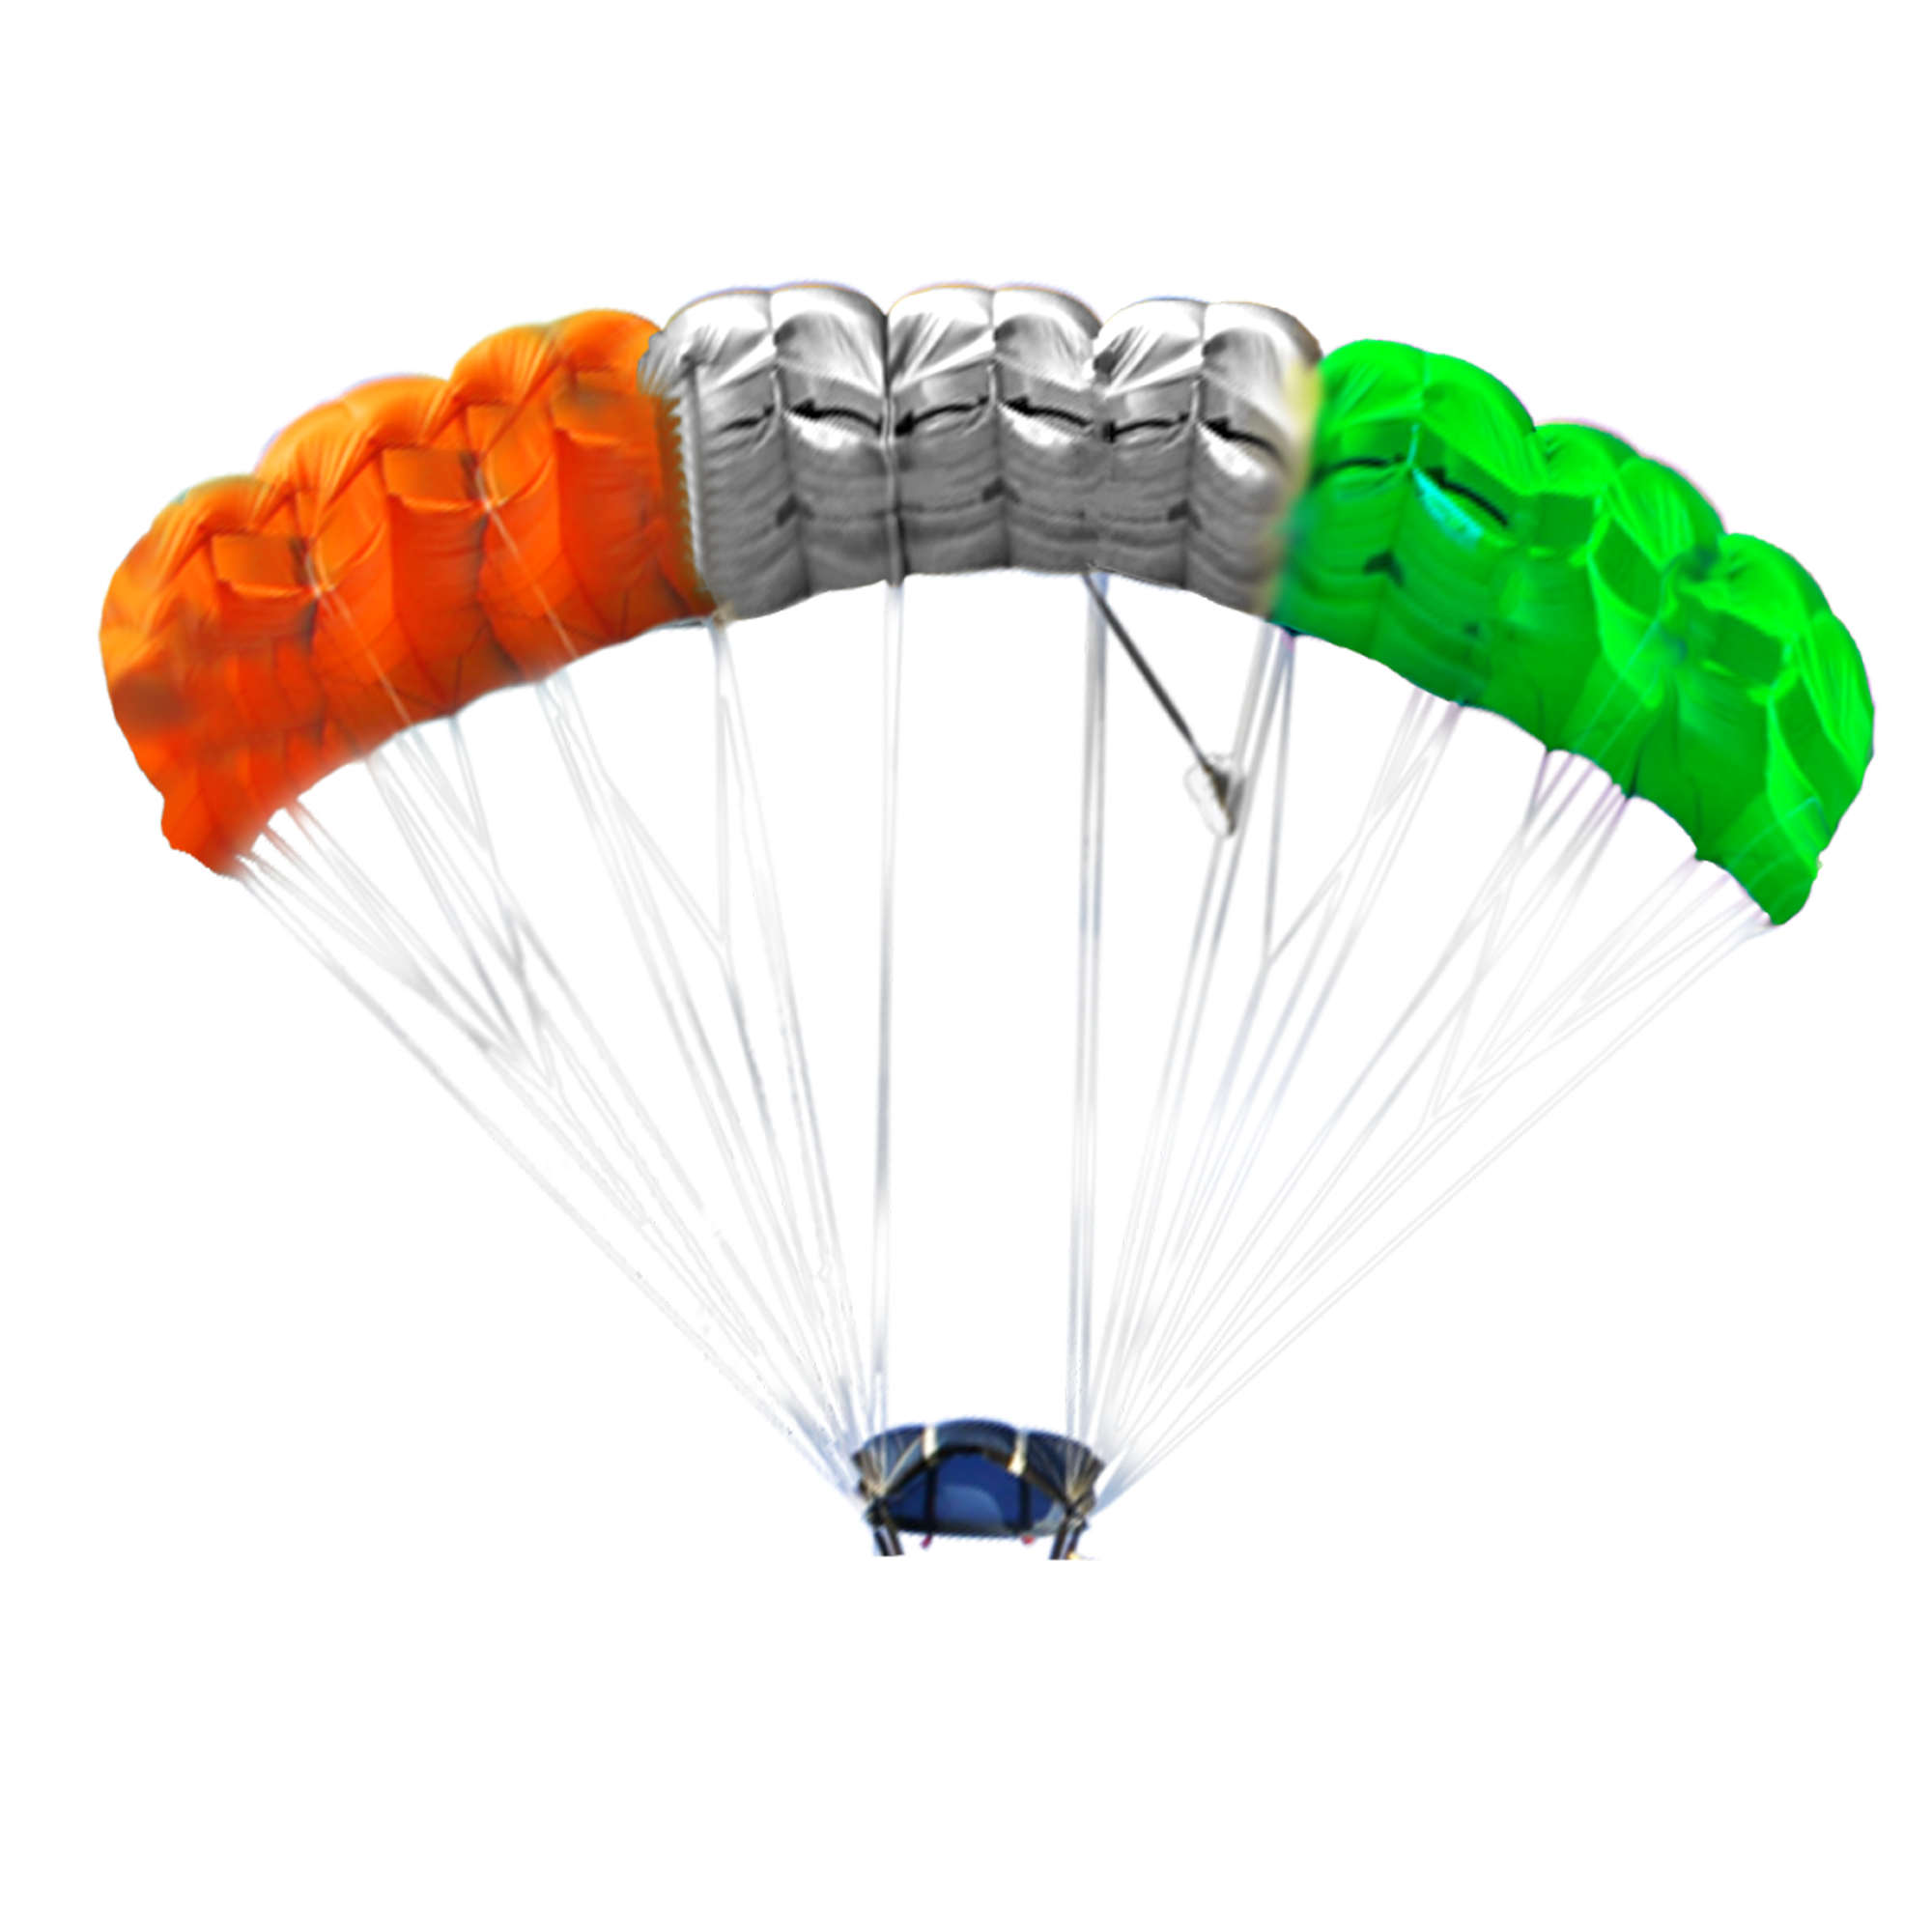 Parachute day png. Indian flag hd august